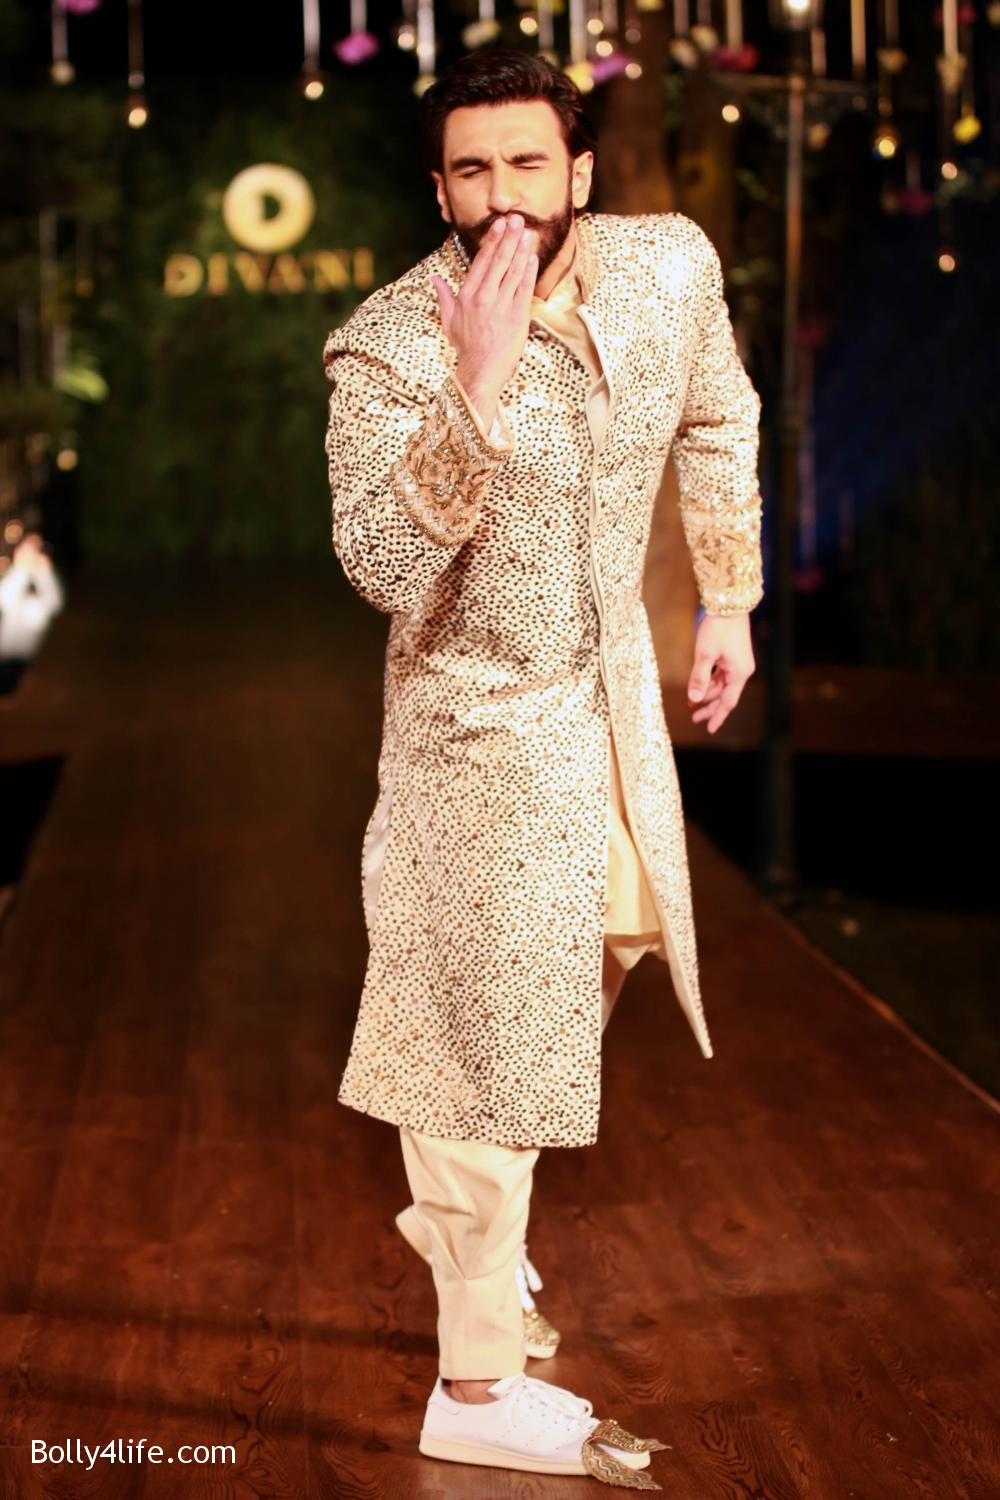 Divani-Fashion-Show-Ranveer-Singh-and-Vaani-Kapoor-17.jpg